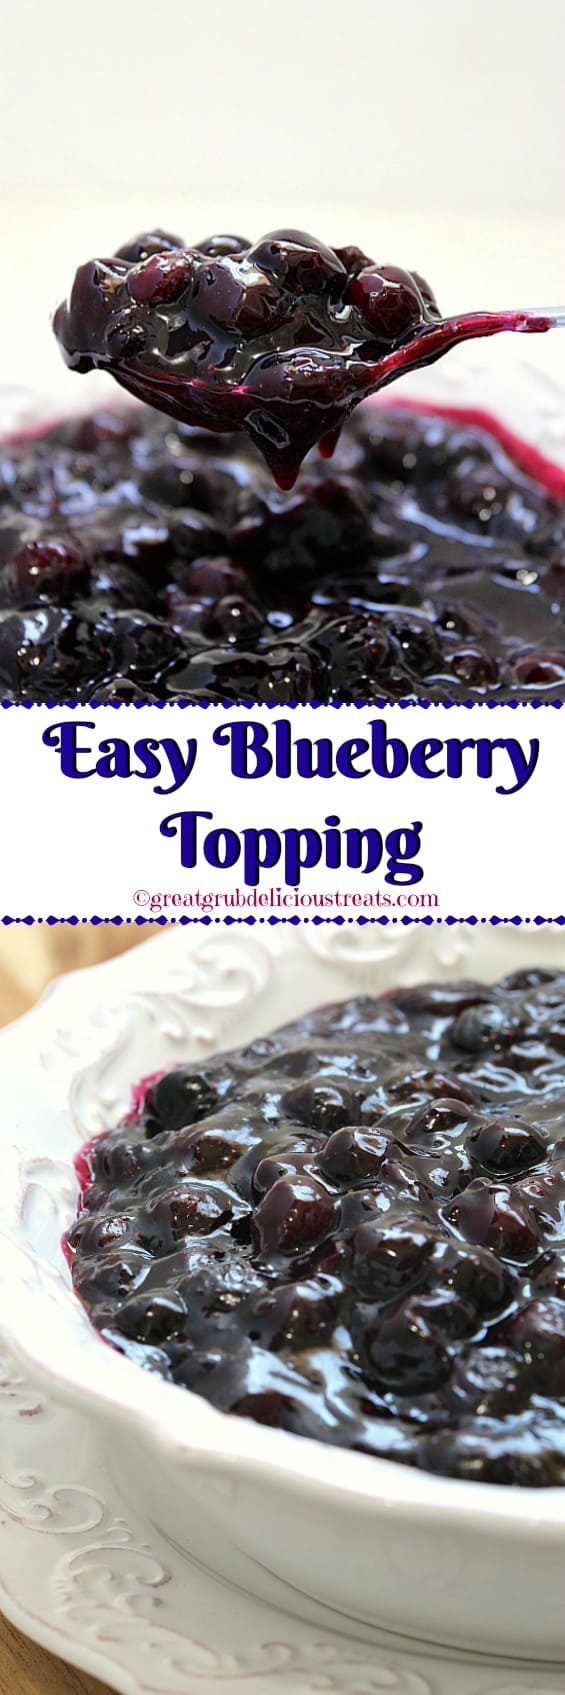 Easy Blueberry Topping